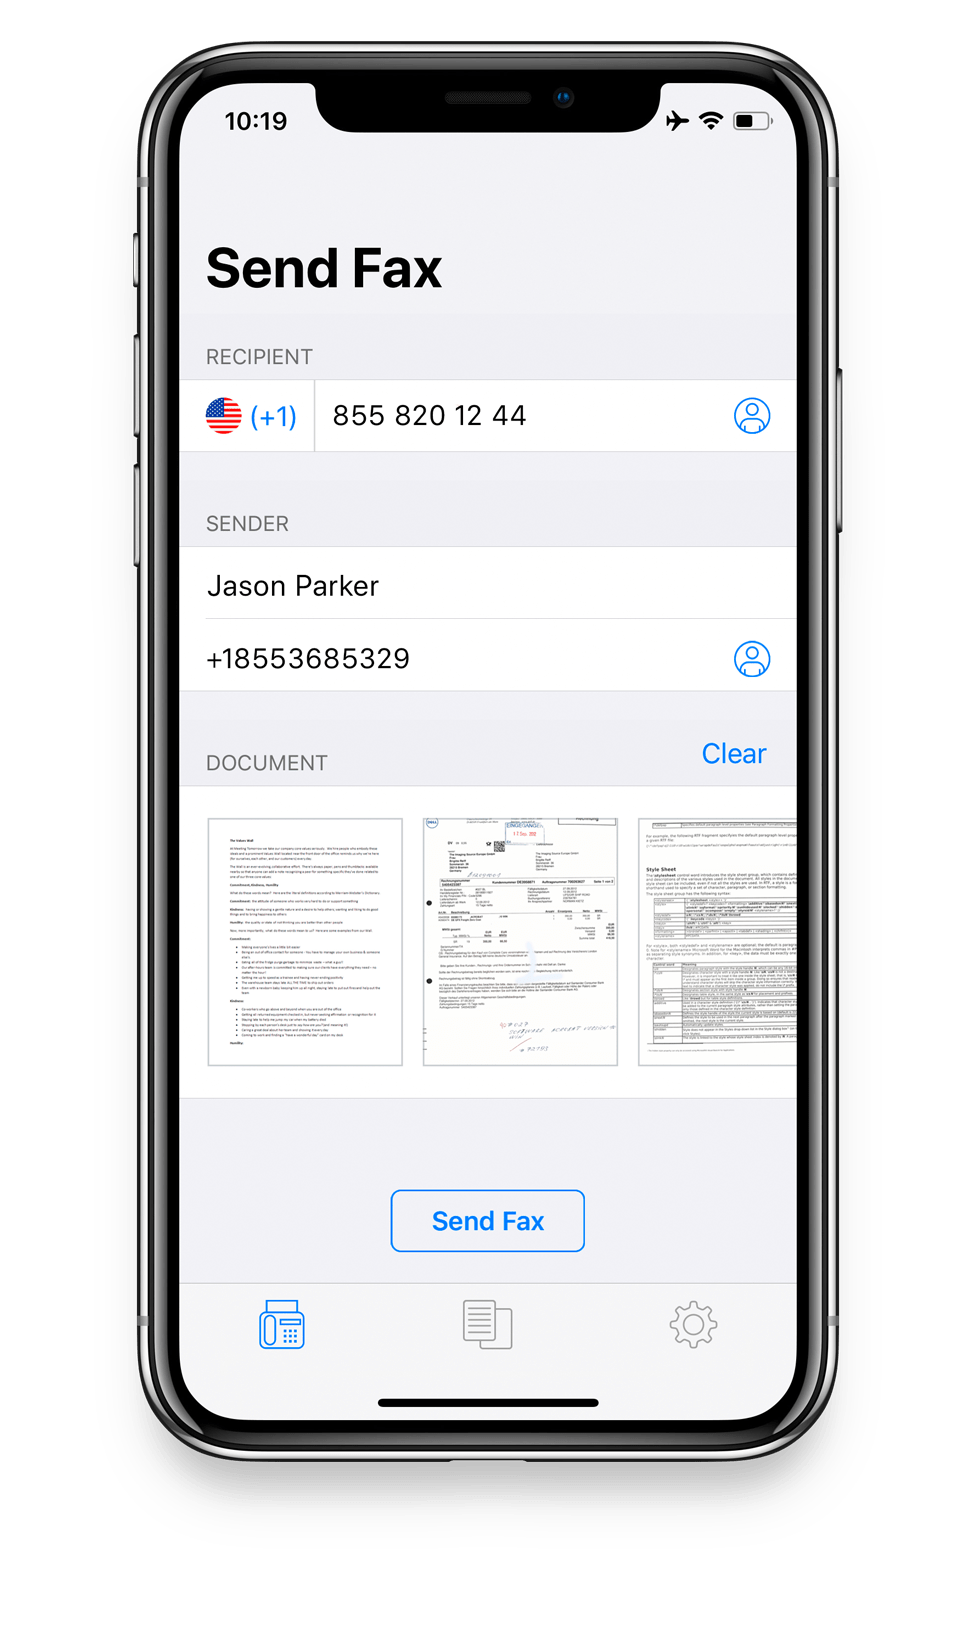 Find the ideal fax app to send fax profitably